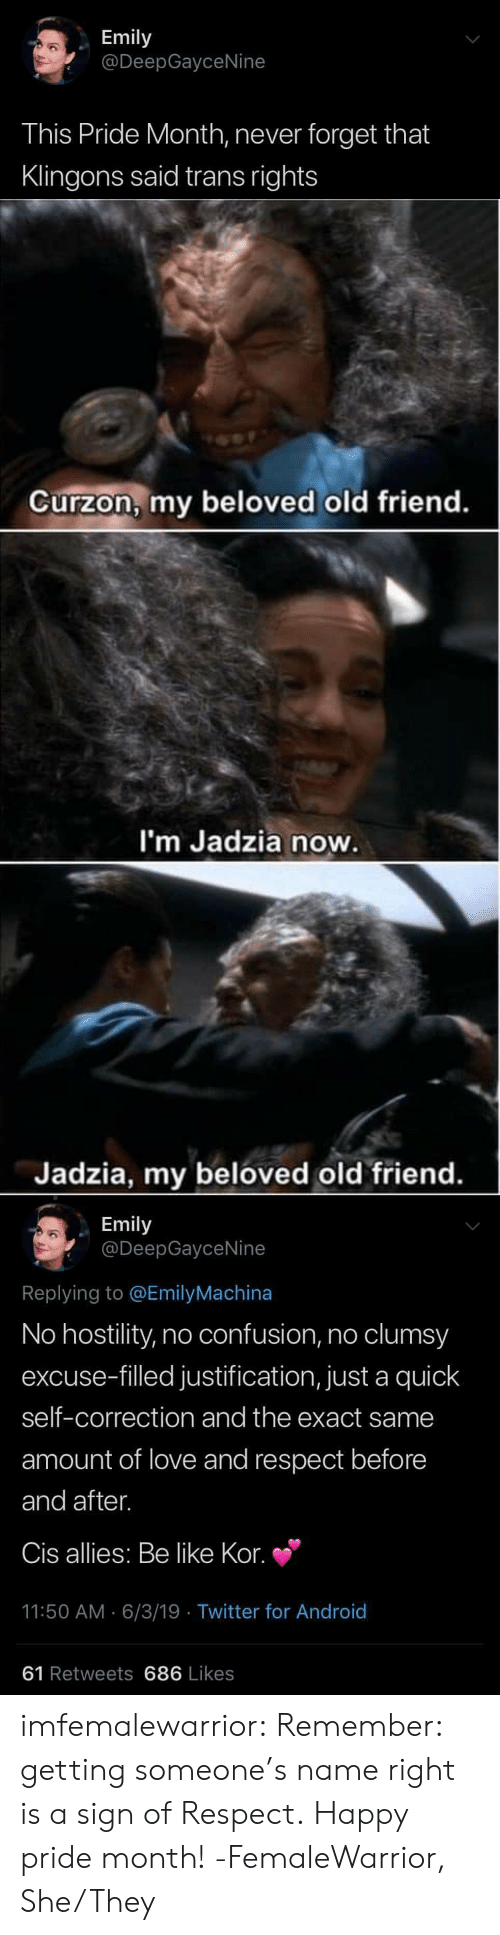 Correction: Emily  @DeepGayceNine  This Pride Month, never forget that  Klingons said trans rights   Curzon, my beloved old friend.  I'm Jadzia now.  Jadzia, my beloved old friend.   Emily  @DeepGayceNine  Replying to @EmilyMachina  No hostility, no confusion, no clumsy  excuse-filled justification, just a quick  self-correction and the exact same  amount of love and respect before  and after.  Cis allies: Be like Kor.  11:50 AM 6/3/19 Twitter for And roid  61 Retweets 686 Likes imfemalewarrior:  Remember: getting someone's name right is a sign of Respect.Happy pride month!-FemaleWarrior, She/They